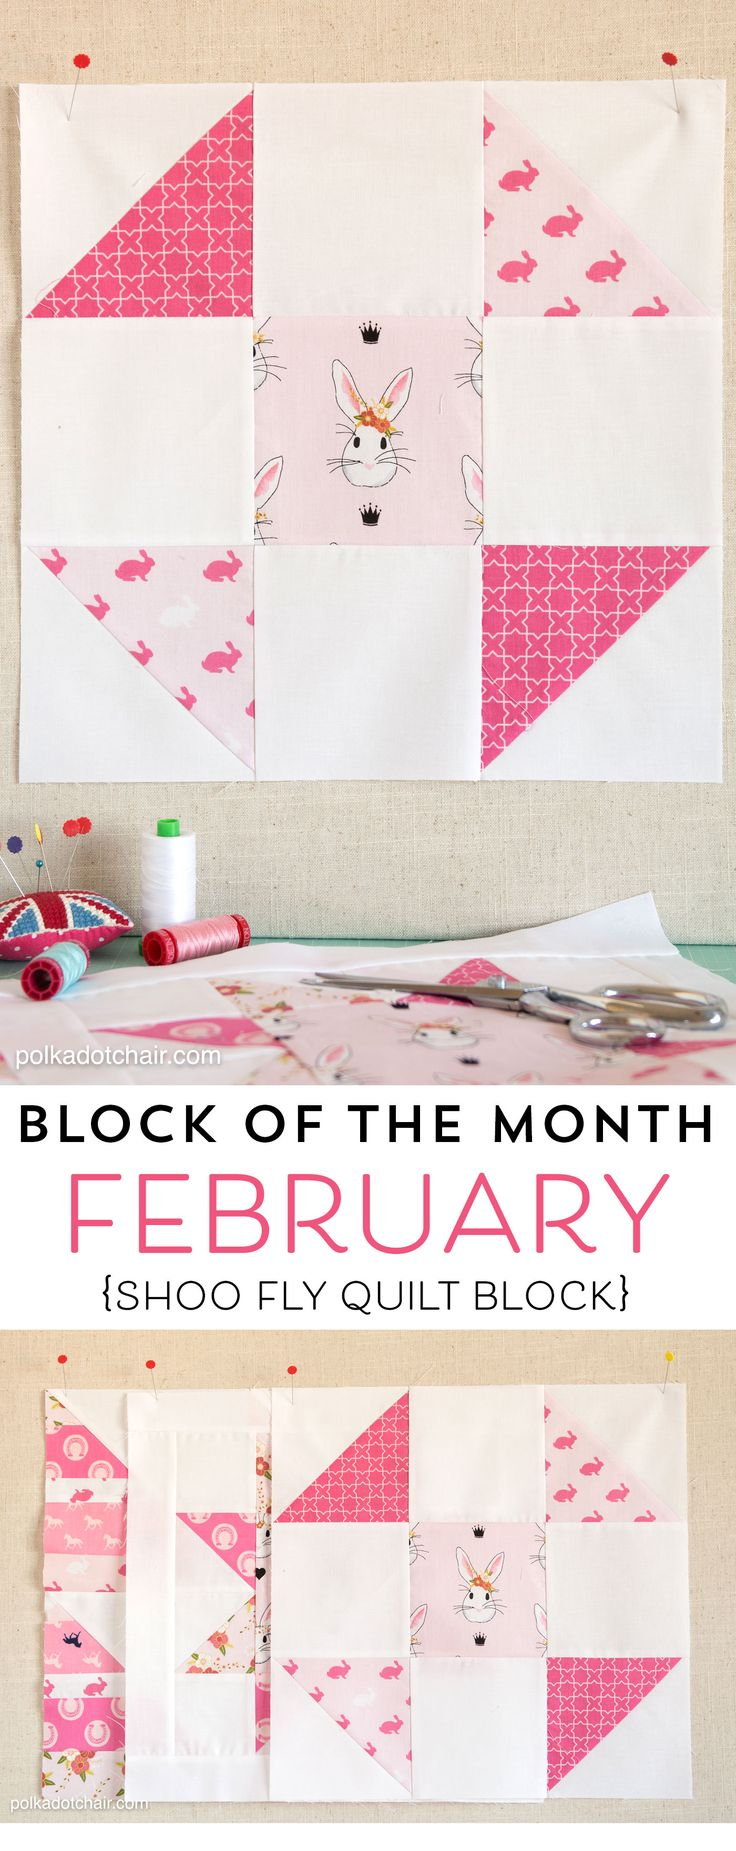 The February Block of the Month on polkadotchair.com - A free pattern for a Shoo Fly Quilt Block posted by Melissa